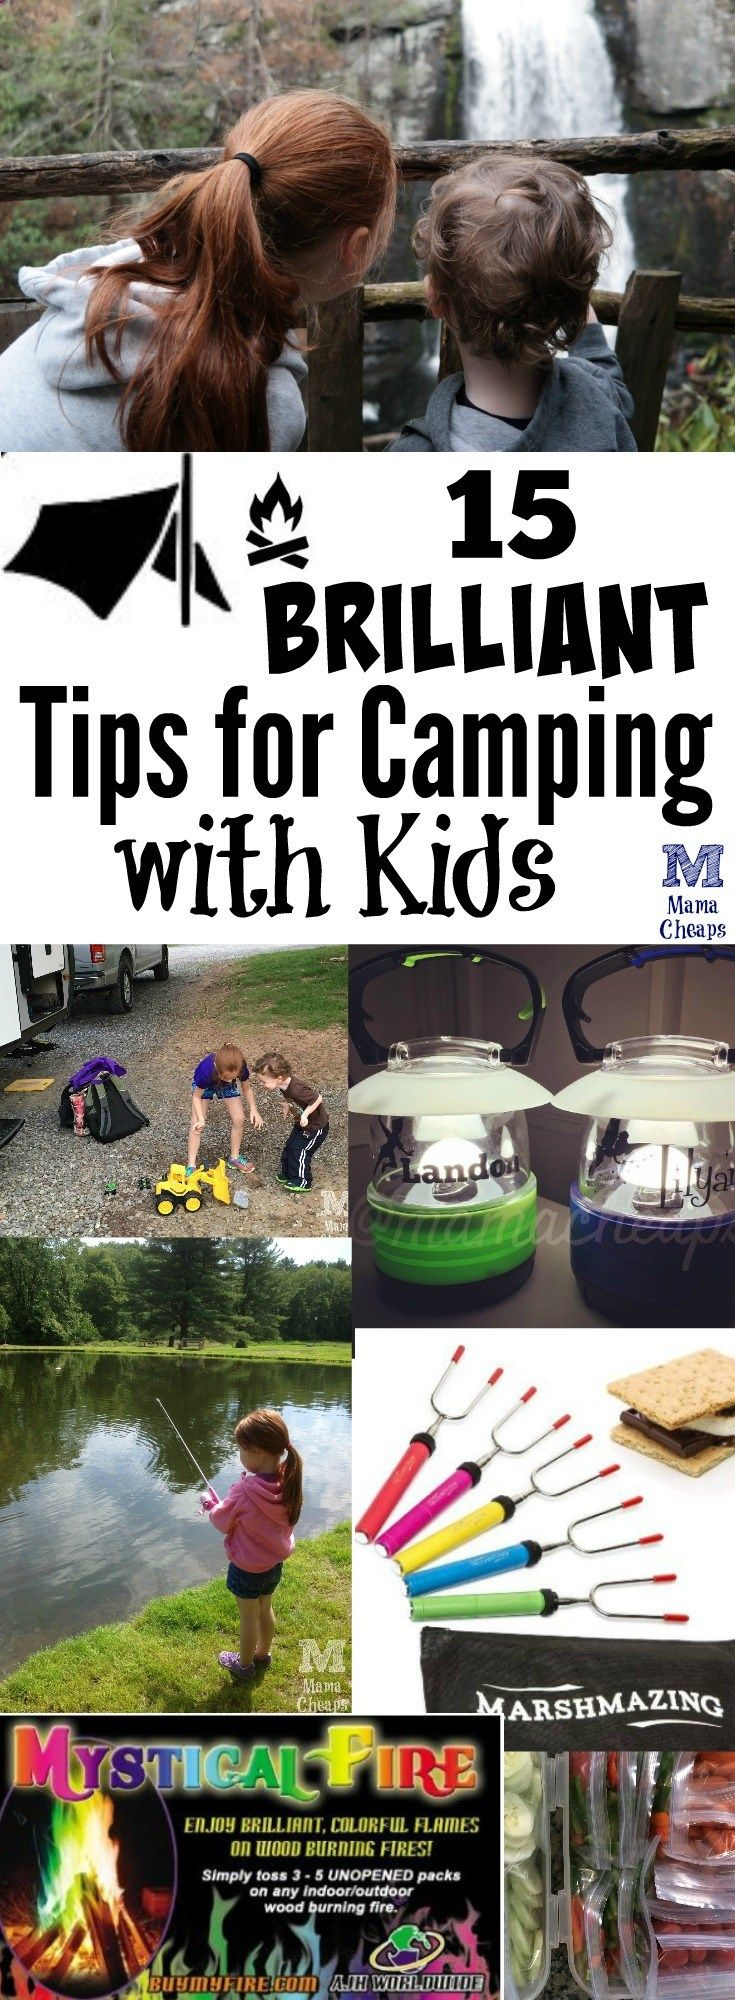 Camping Fun - 15 Brilliant Tips for Camping with Kids